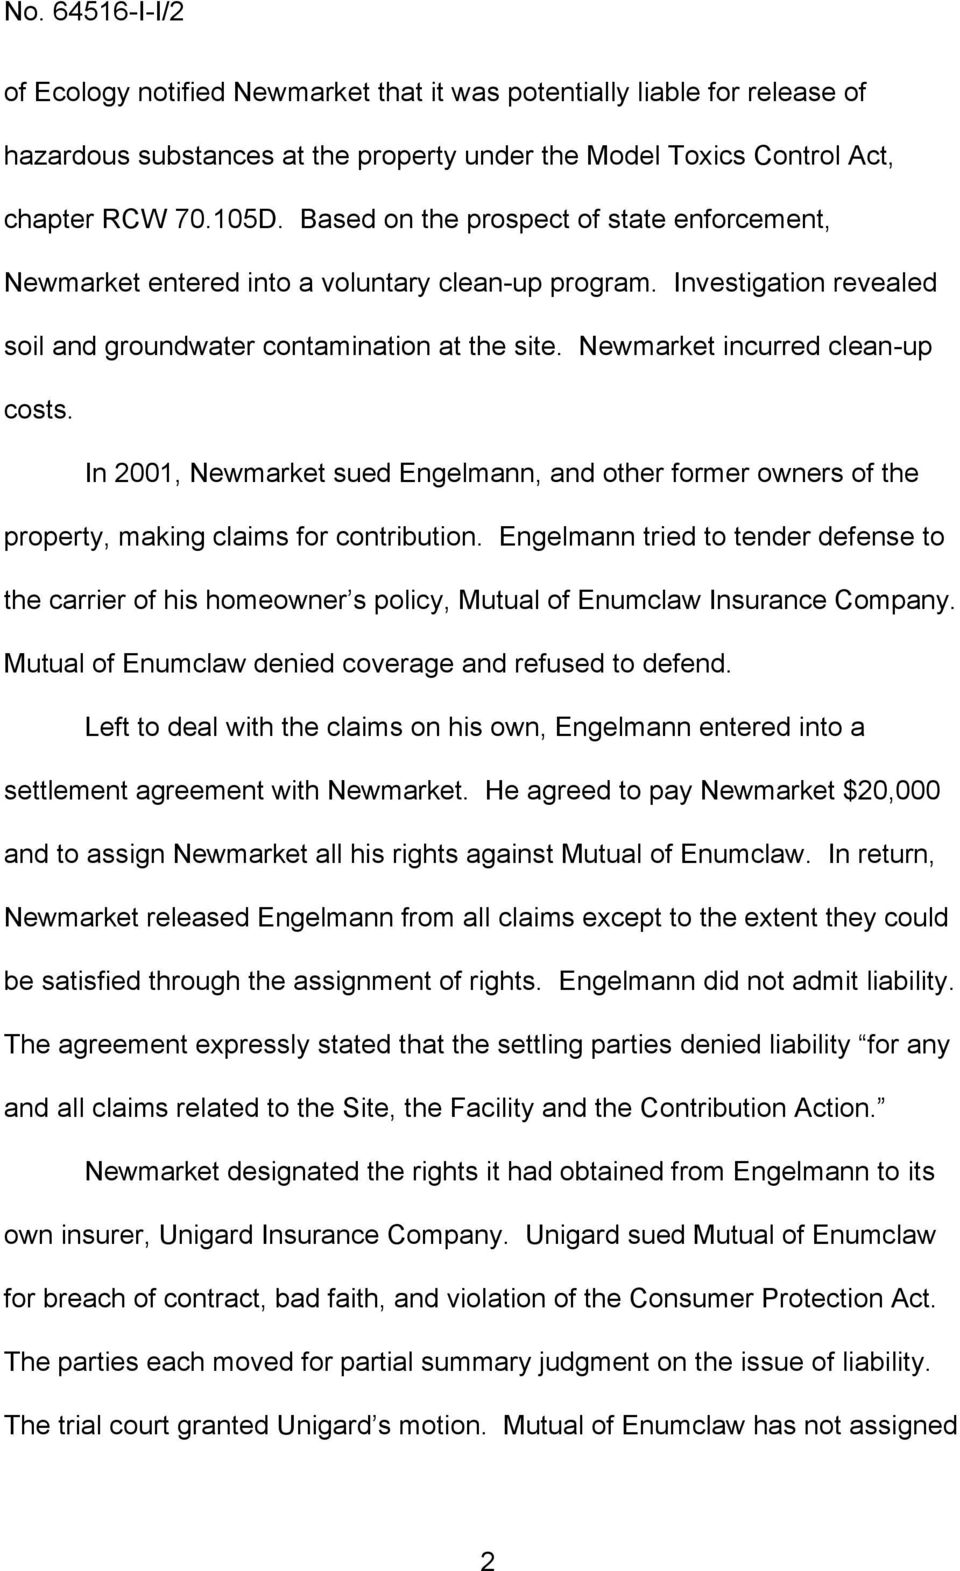 Newmarket incurred clean-up costs. In 2001, Newmarket sued Engelmann, and other former owners of the property, making claims for contribution.